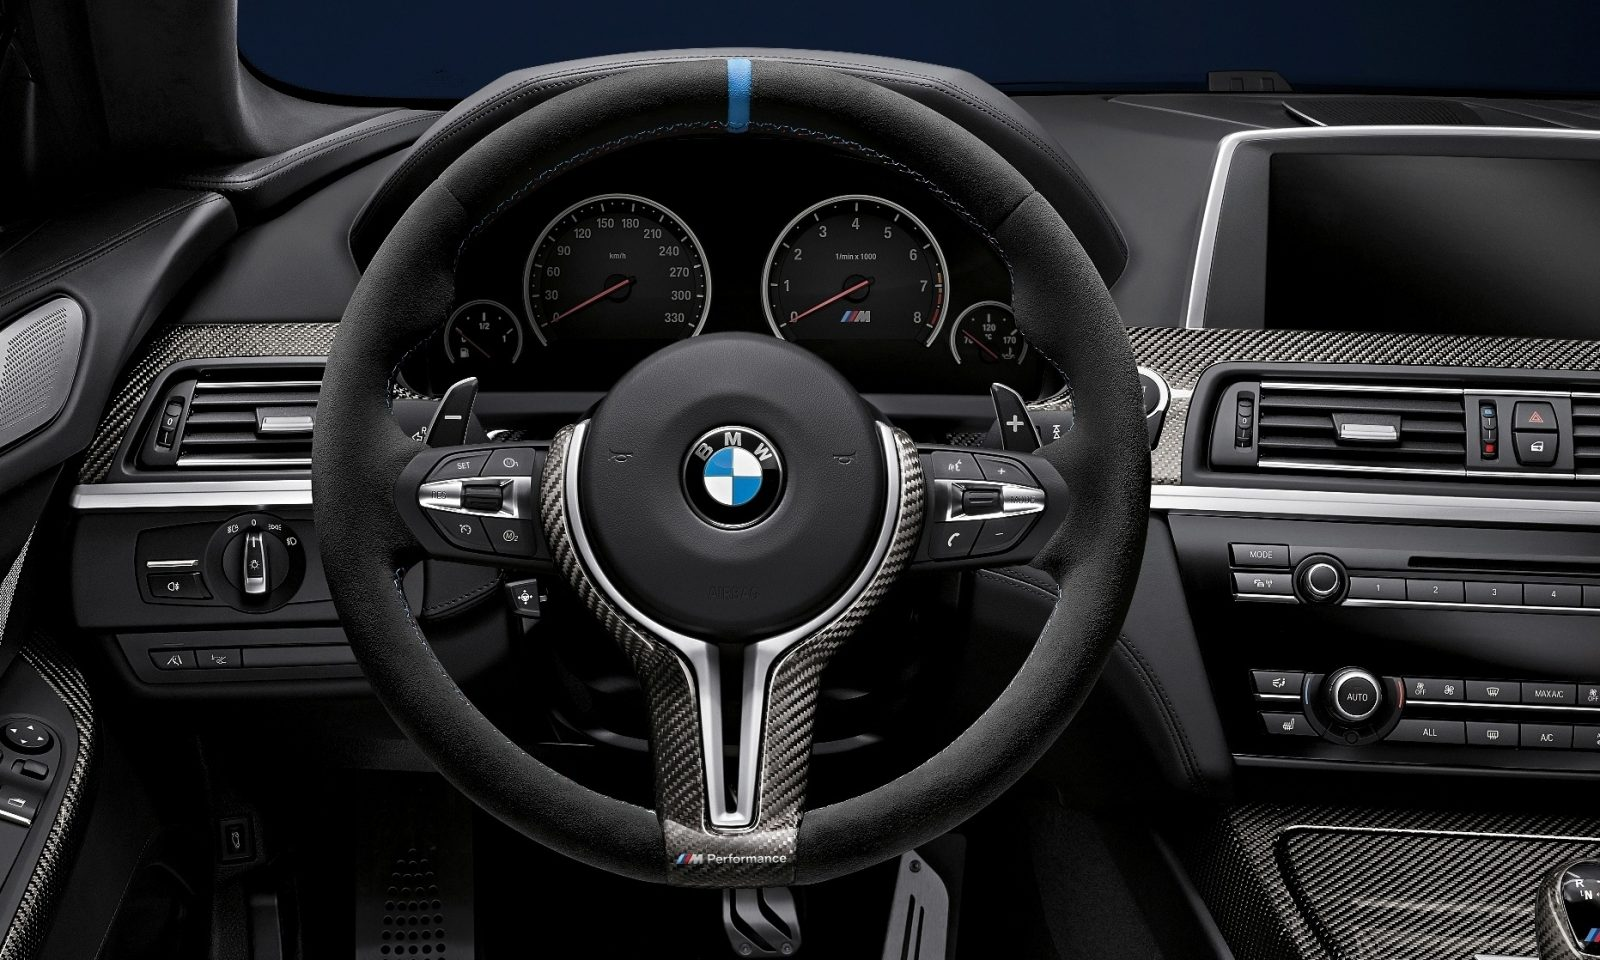 M Performance Catalog Offers Hundreds of Ways to Up the Drama and Road Presence of 335i, 535i, M3 and even the X5 and X6 78